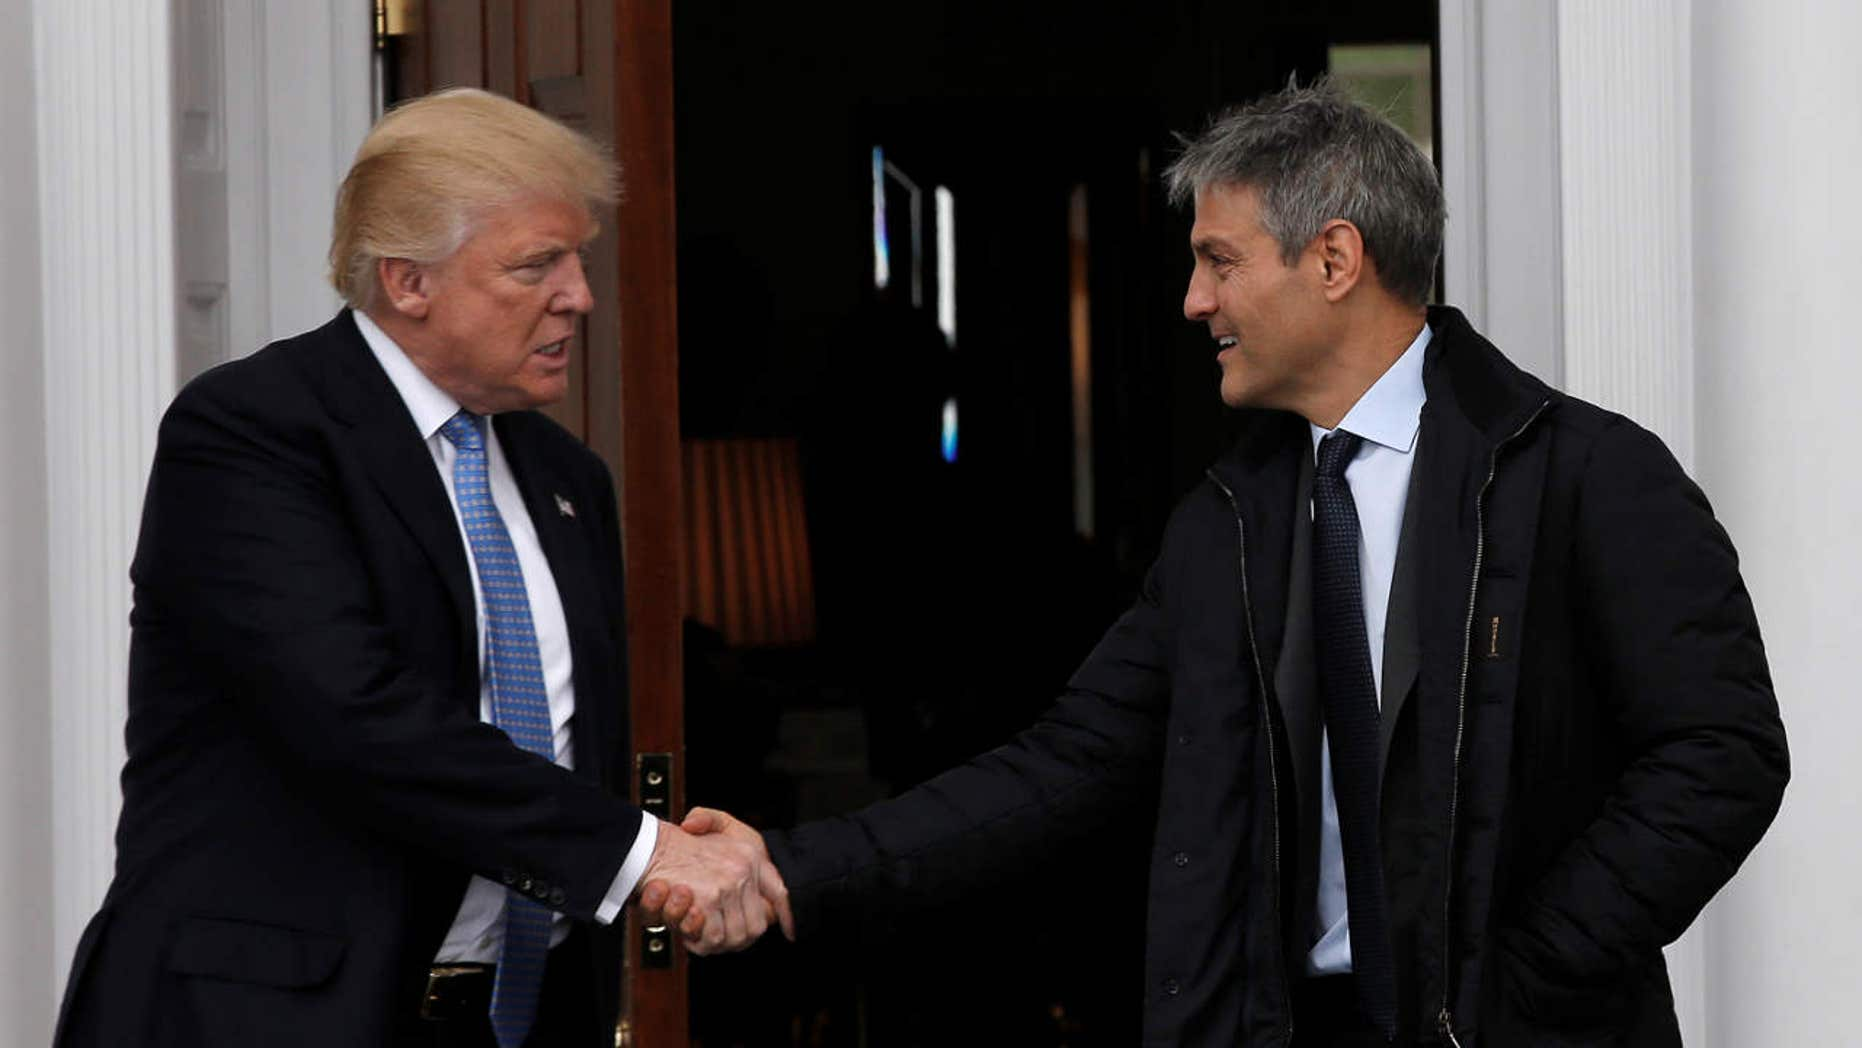 U.S. President-elect Donald Trump emerges with Ari Emanuel after their meeting in at the Trump National Golf Club in Bedminster, N.J.